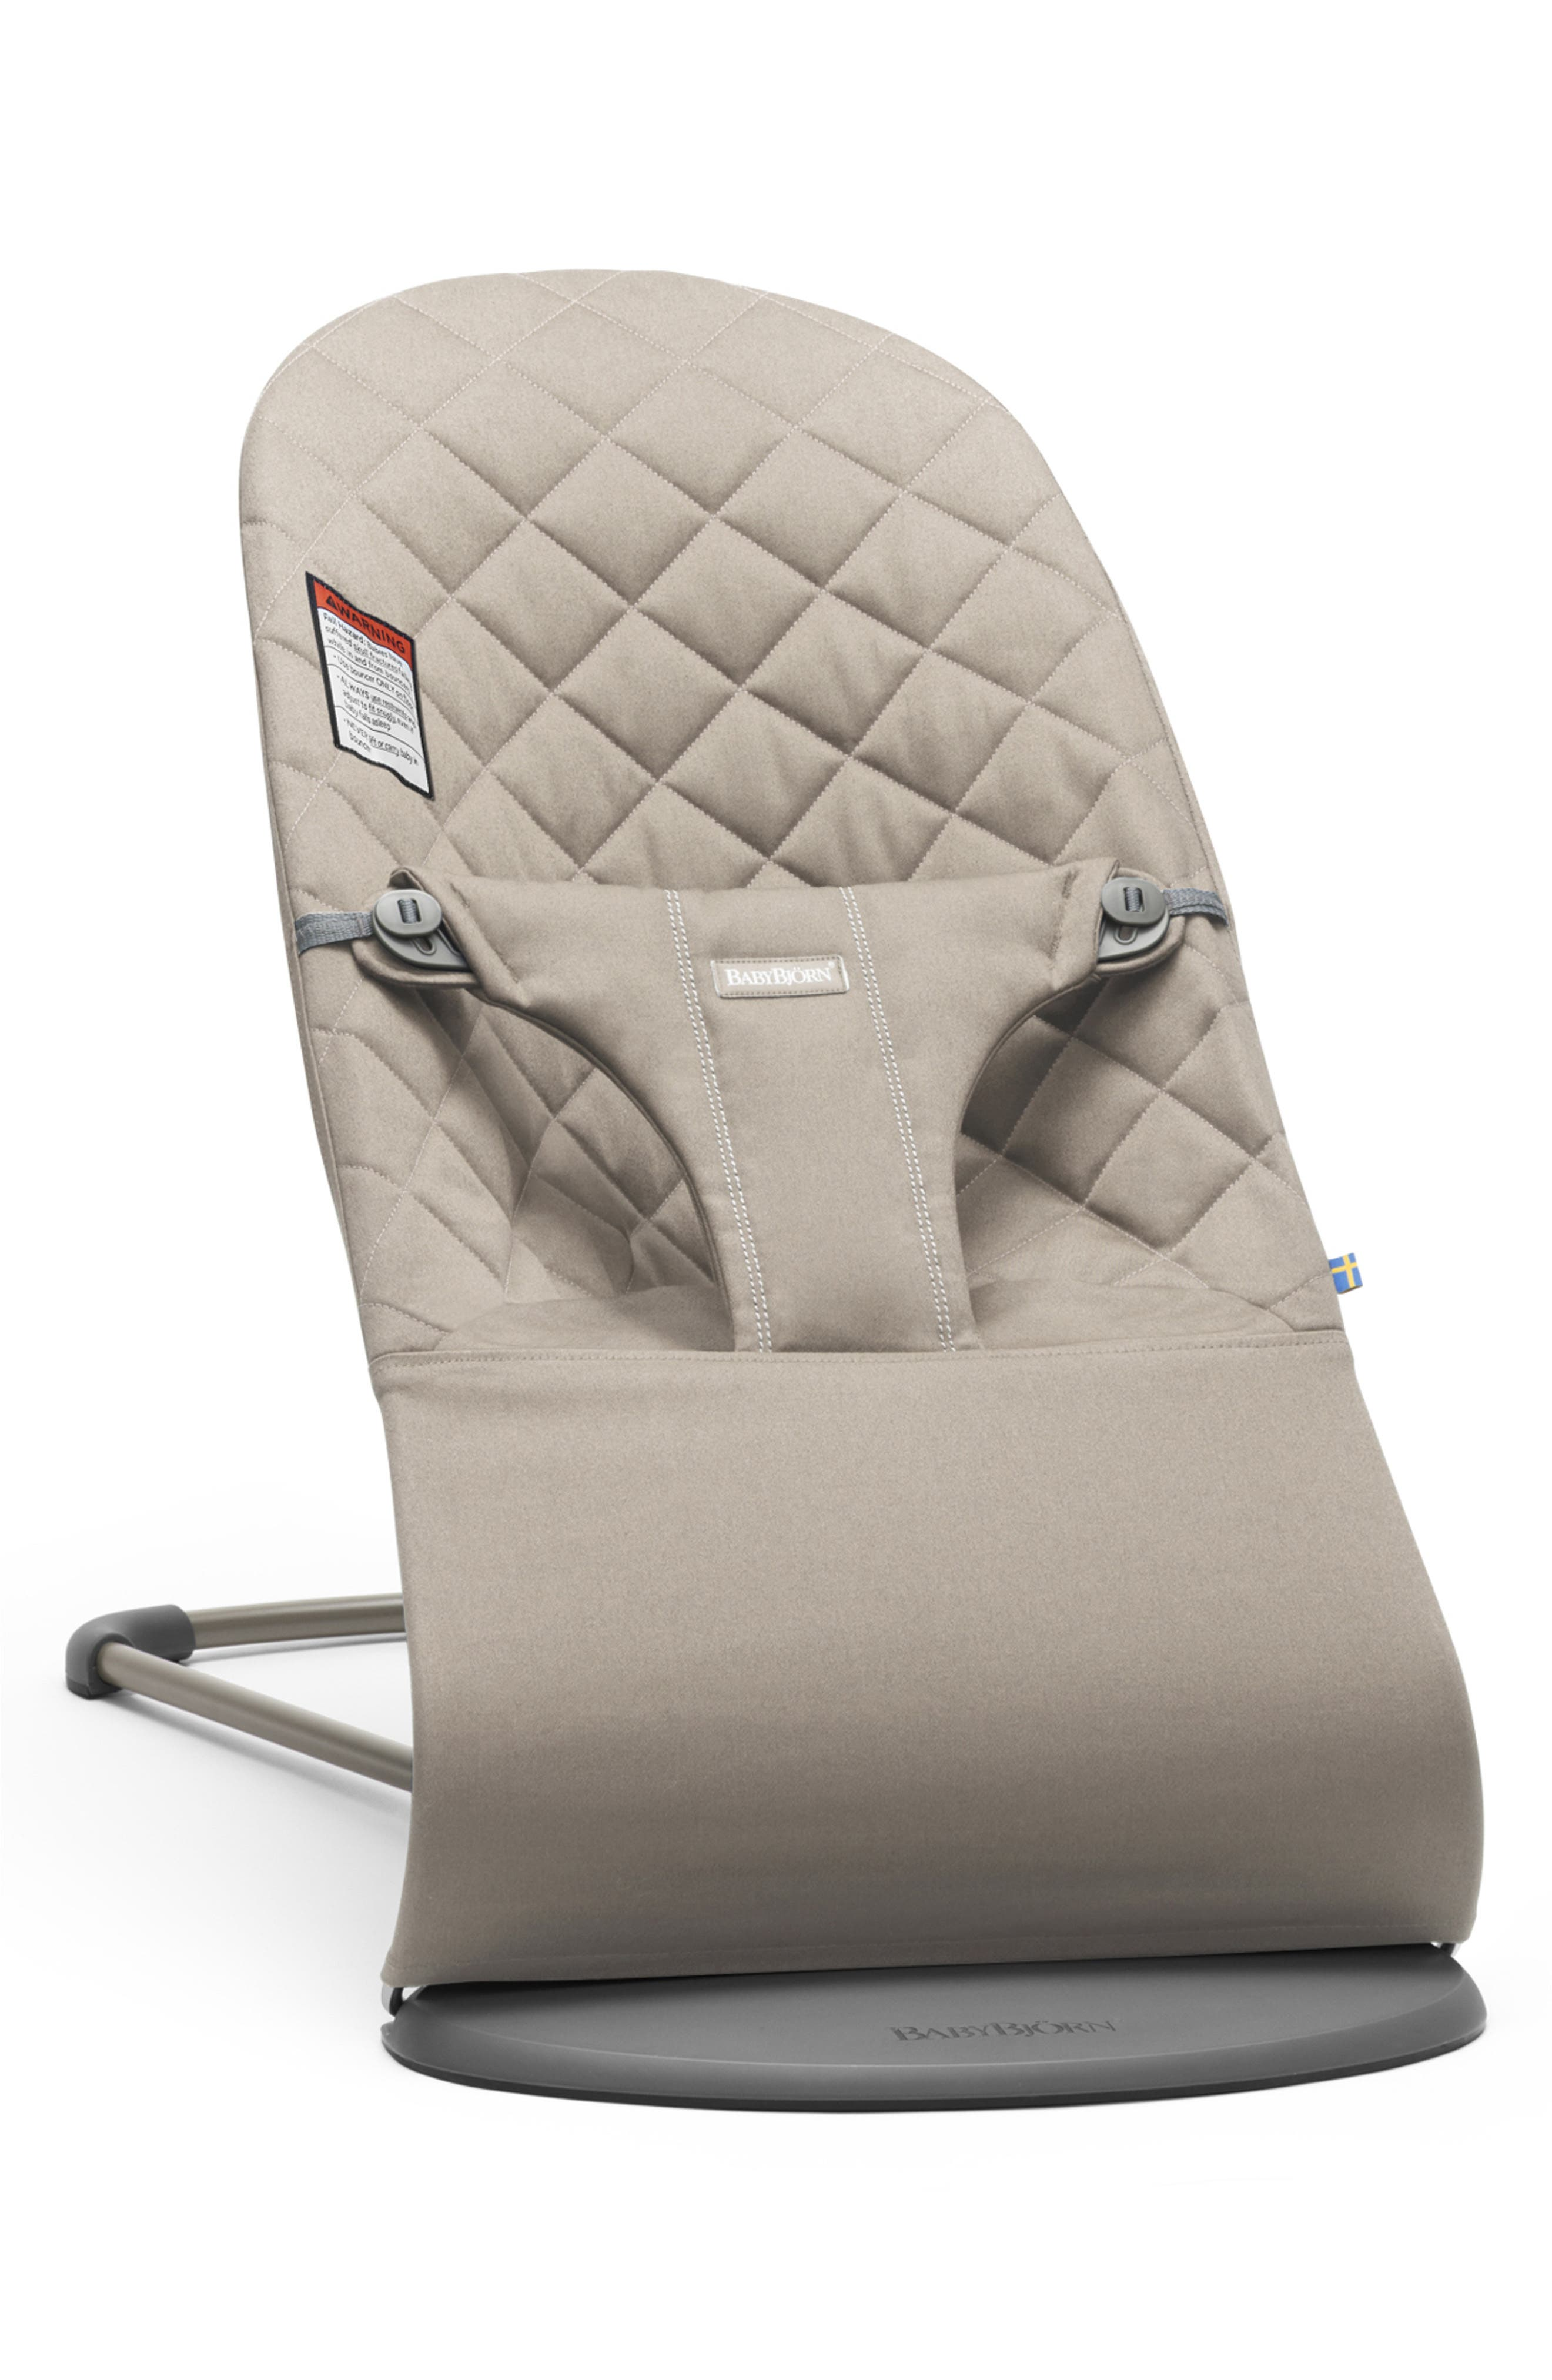 Infant Babybjorn Bouncer Bliss Convertible Quilted Baby Bouncer Size One Size  Grey